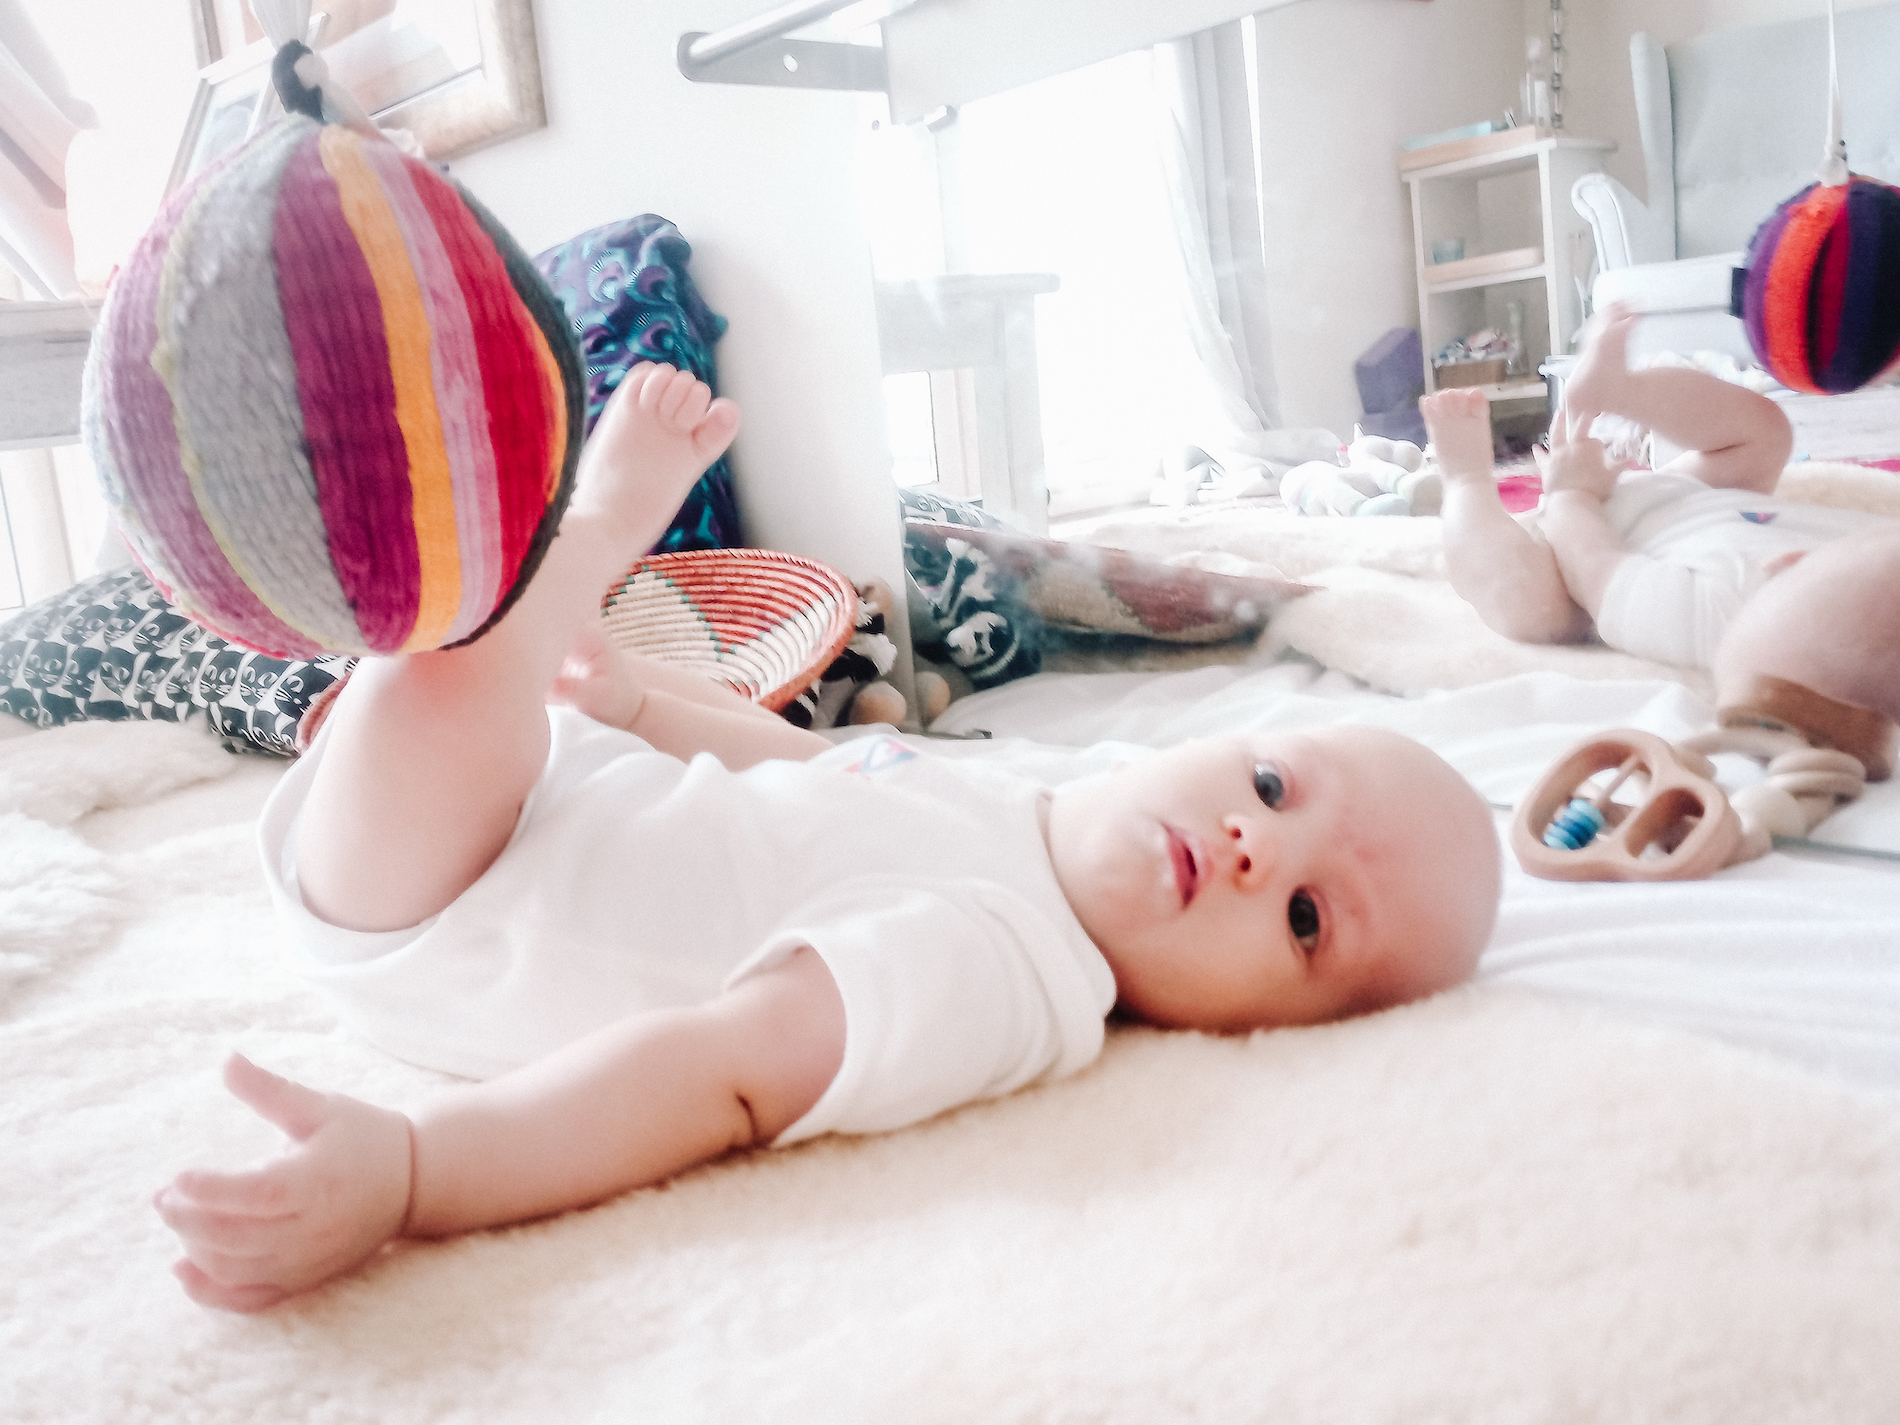 Five month old baby lying on sheepskin next to floor mirror kicking a ball